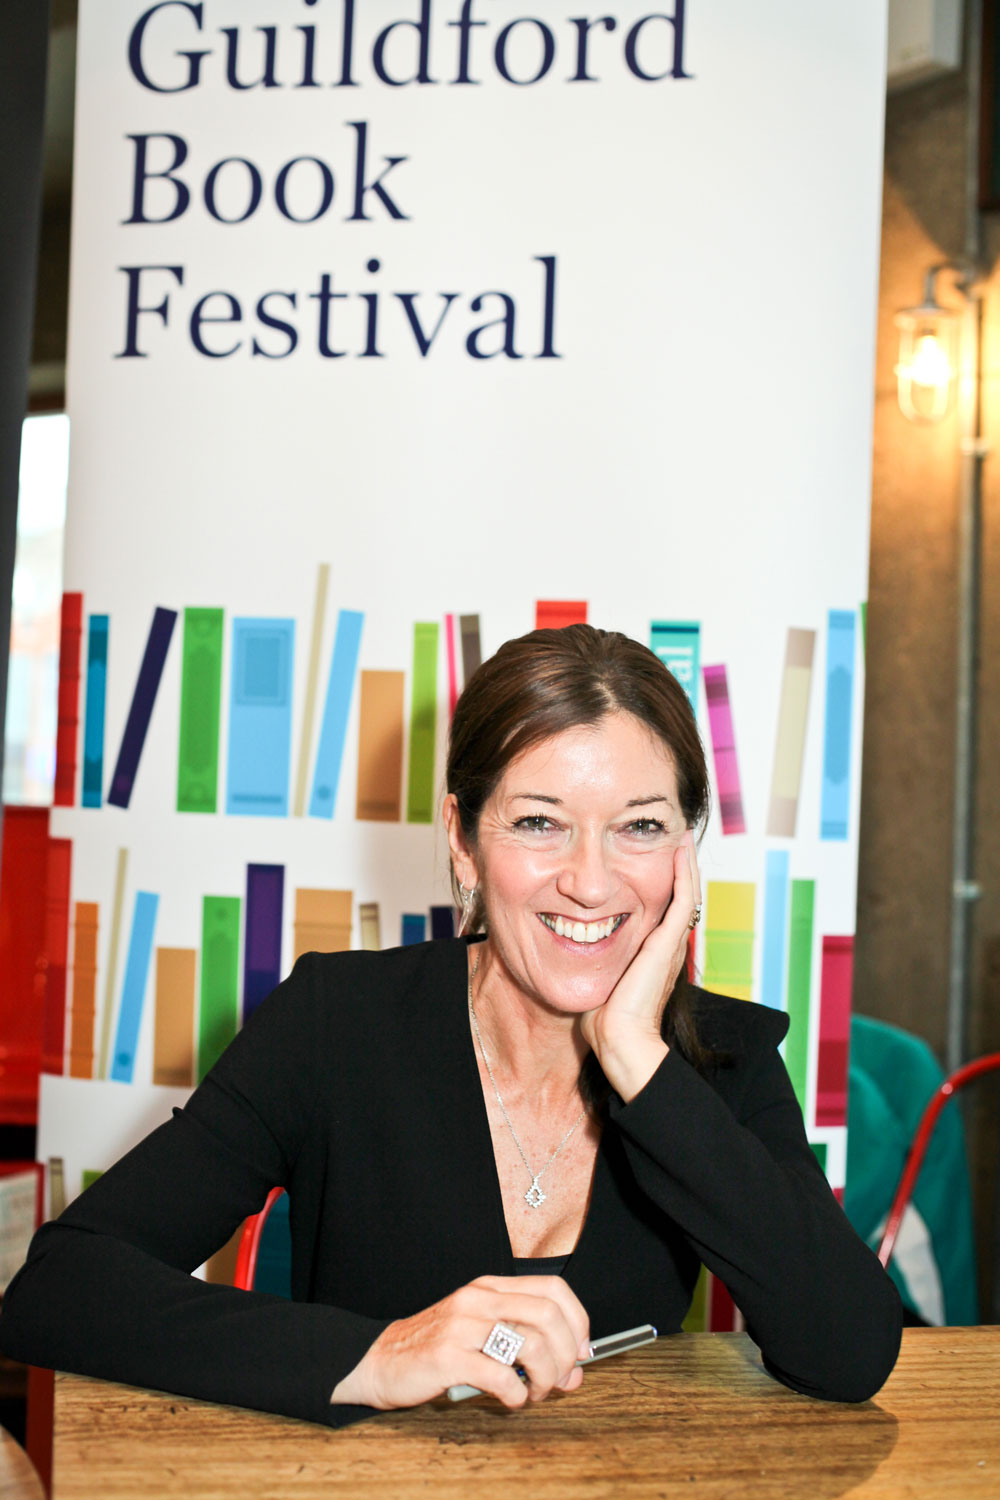 Guildford Book Festival 2014